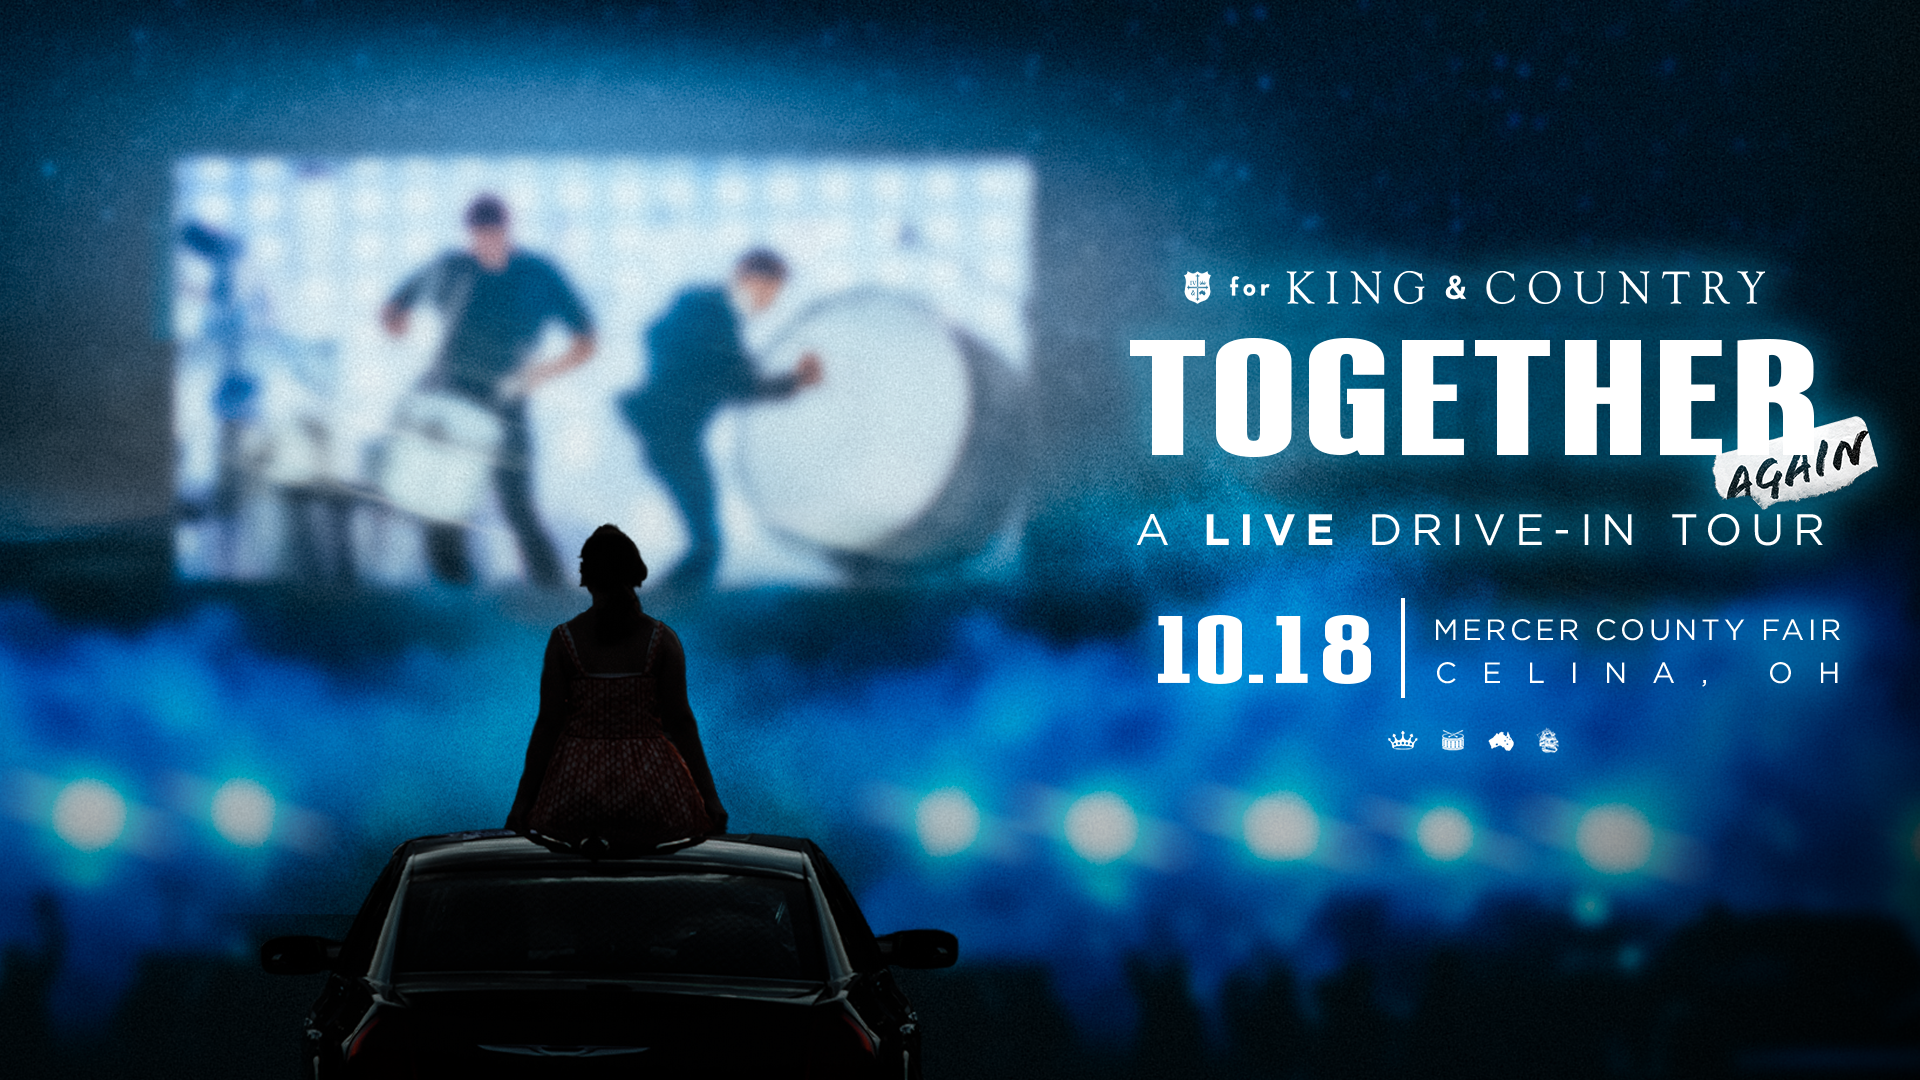 Together A Drive-in Tour